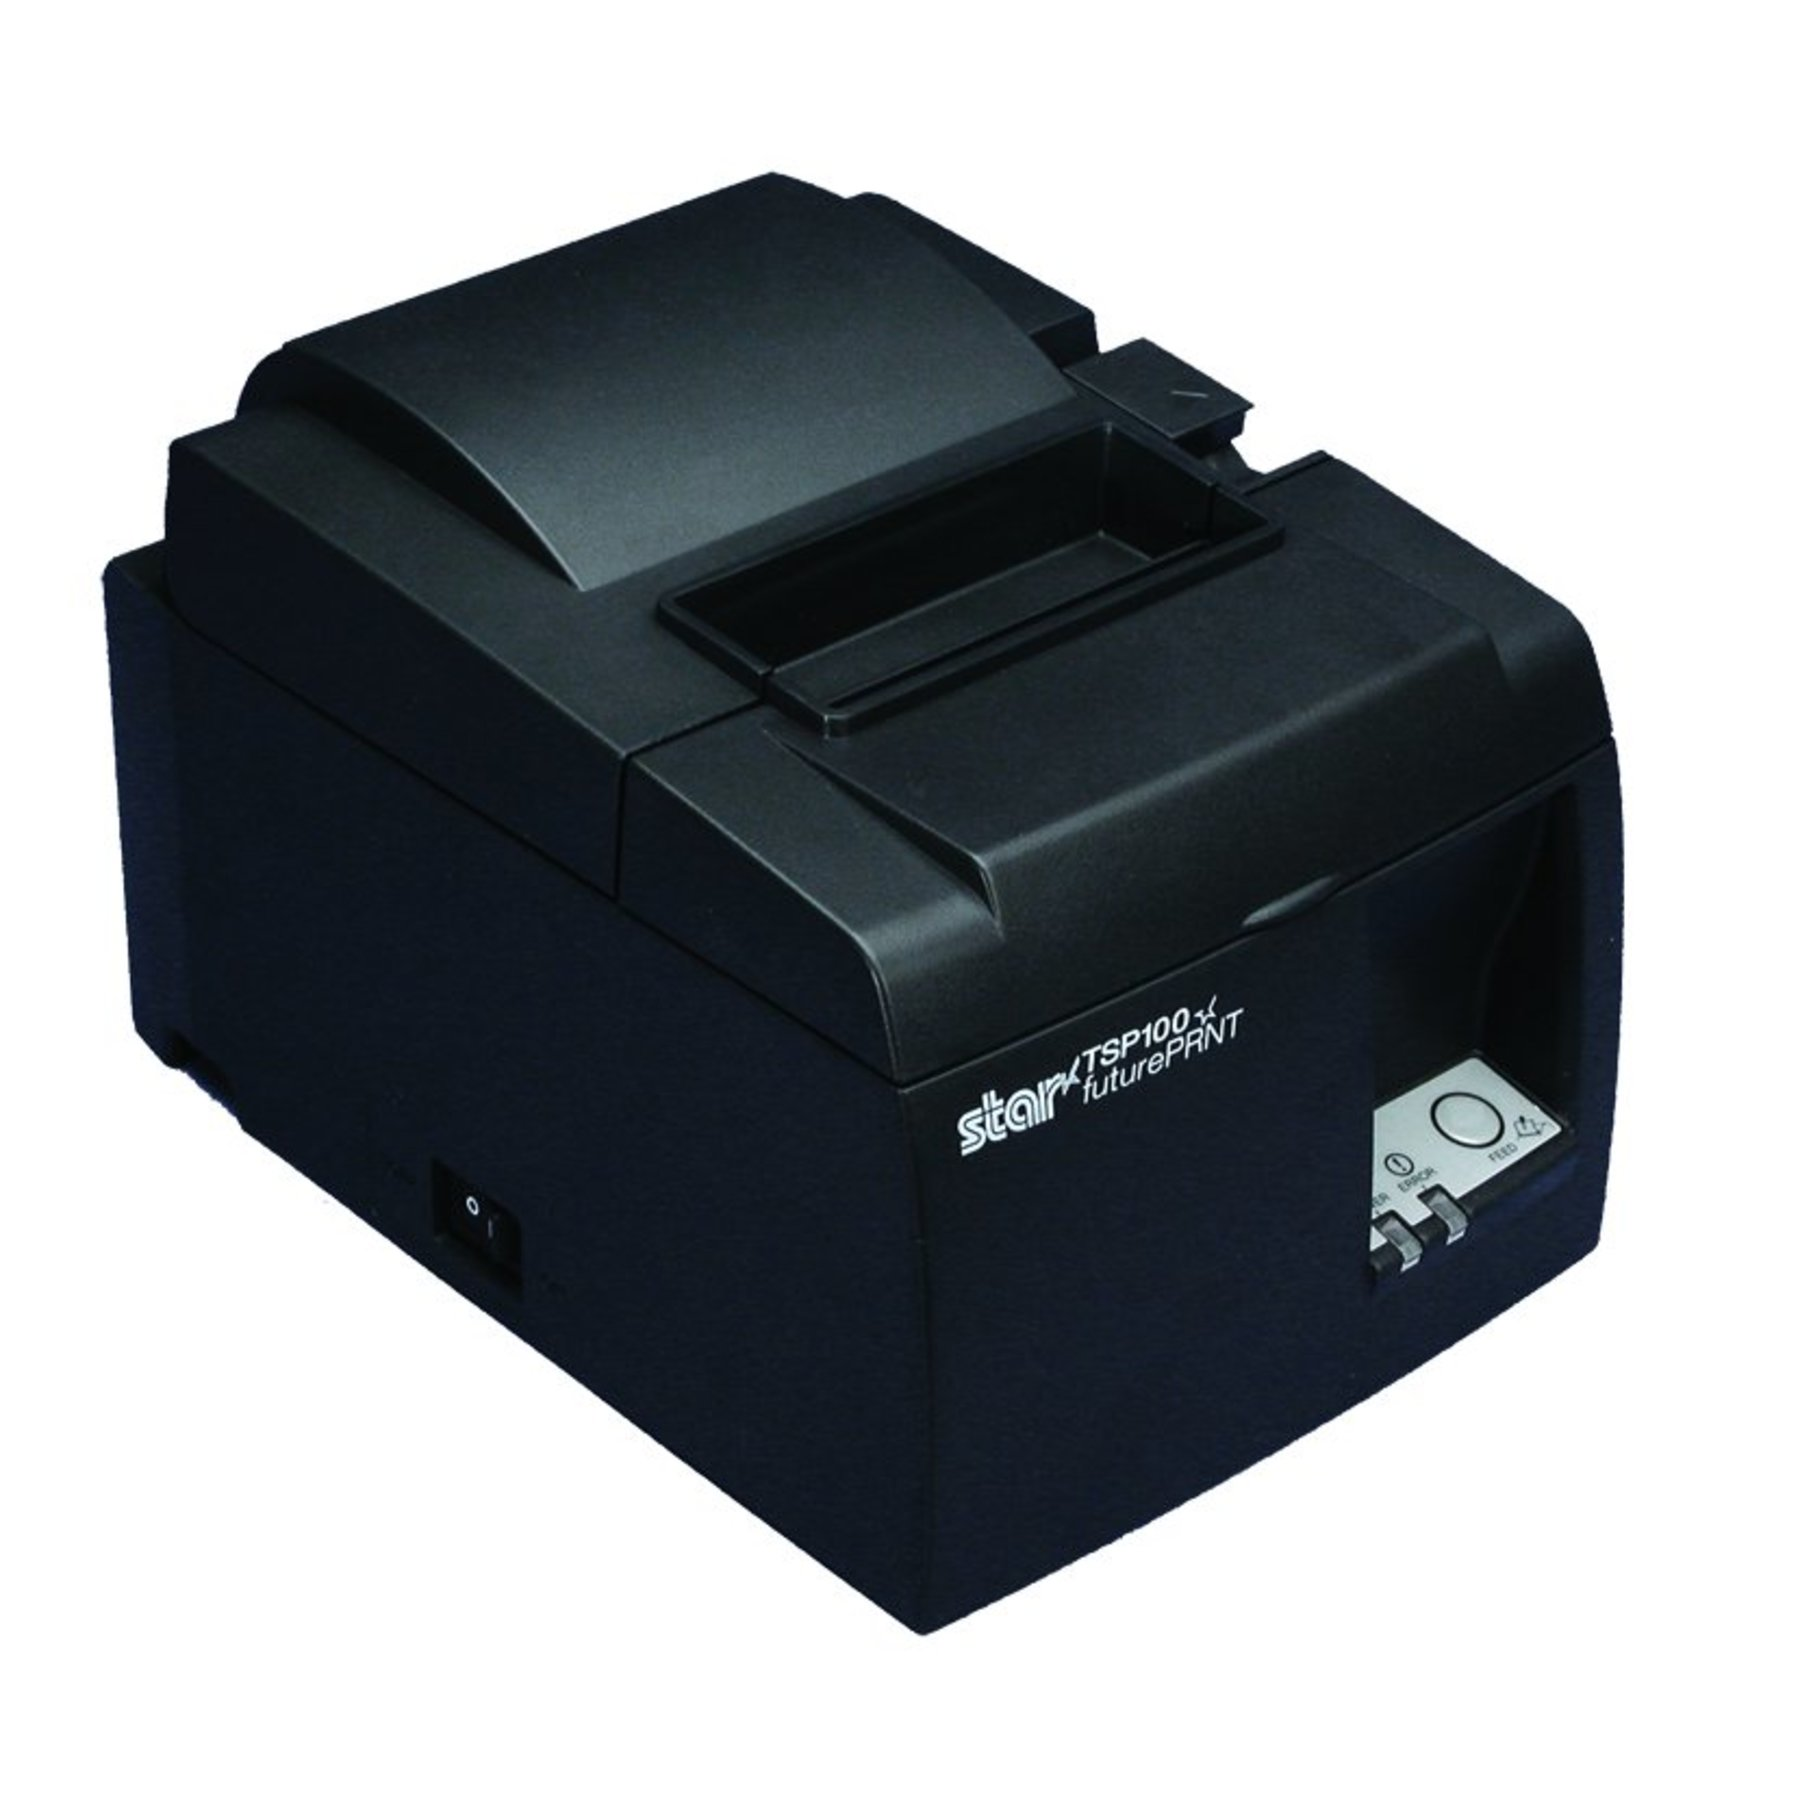 aeac pos register duty heavy black of barcode set scanner ip sale mm receipt printer combo w coin lock key point bills drawer cash and usb thermal